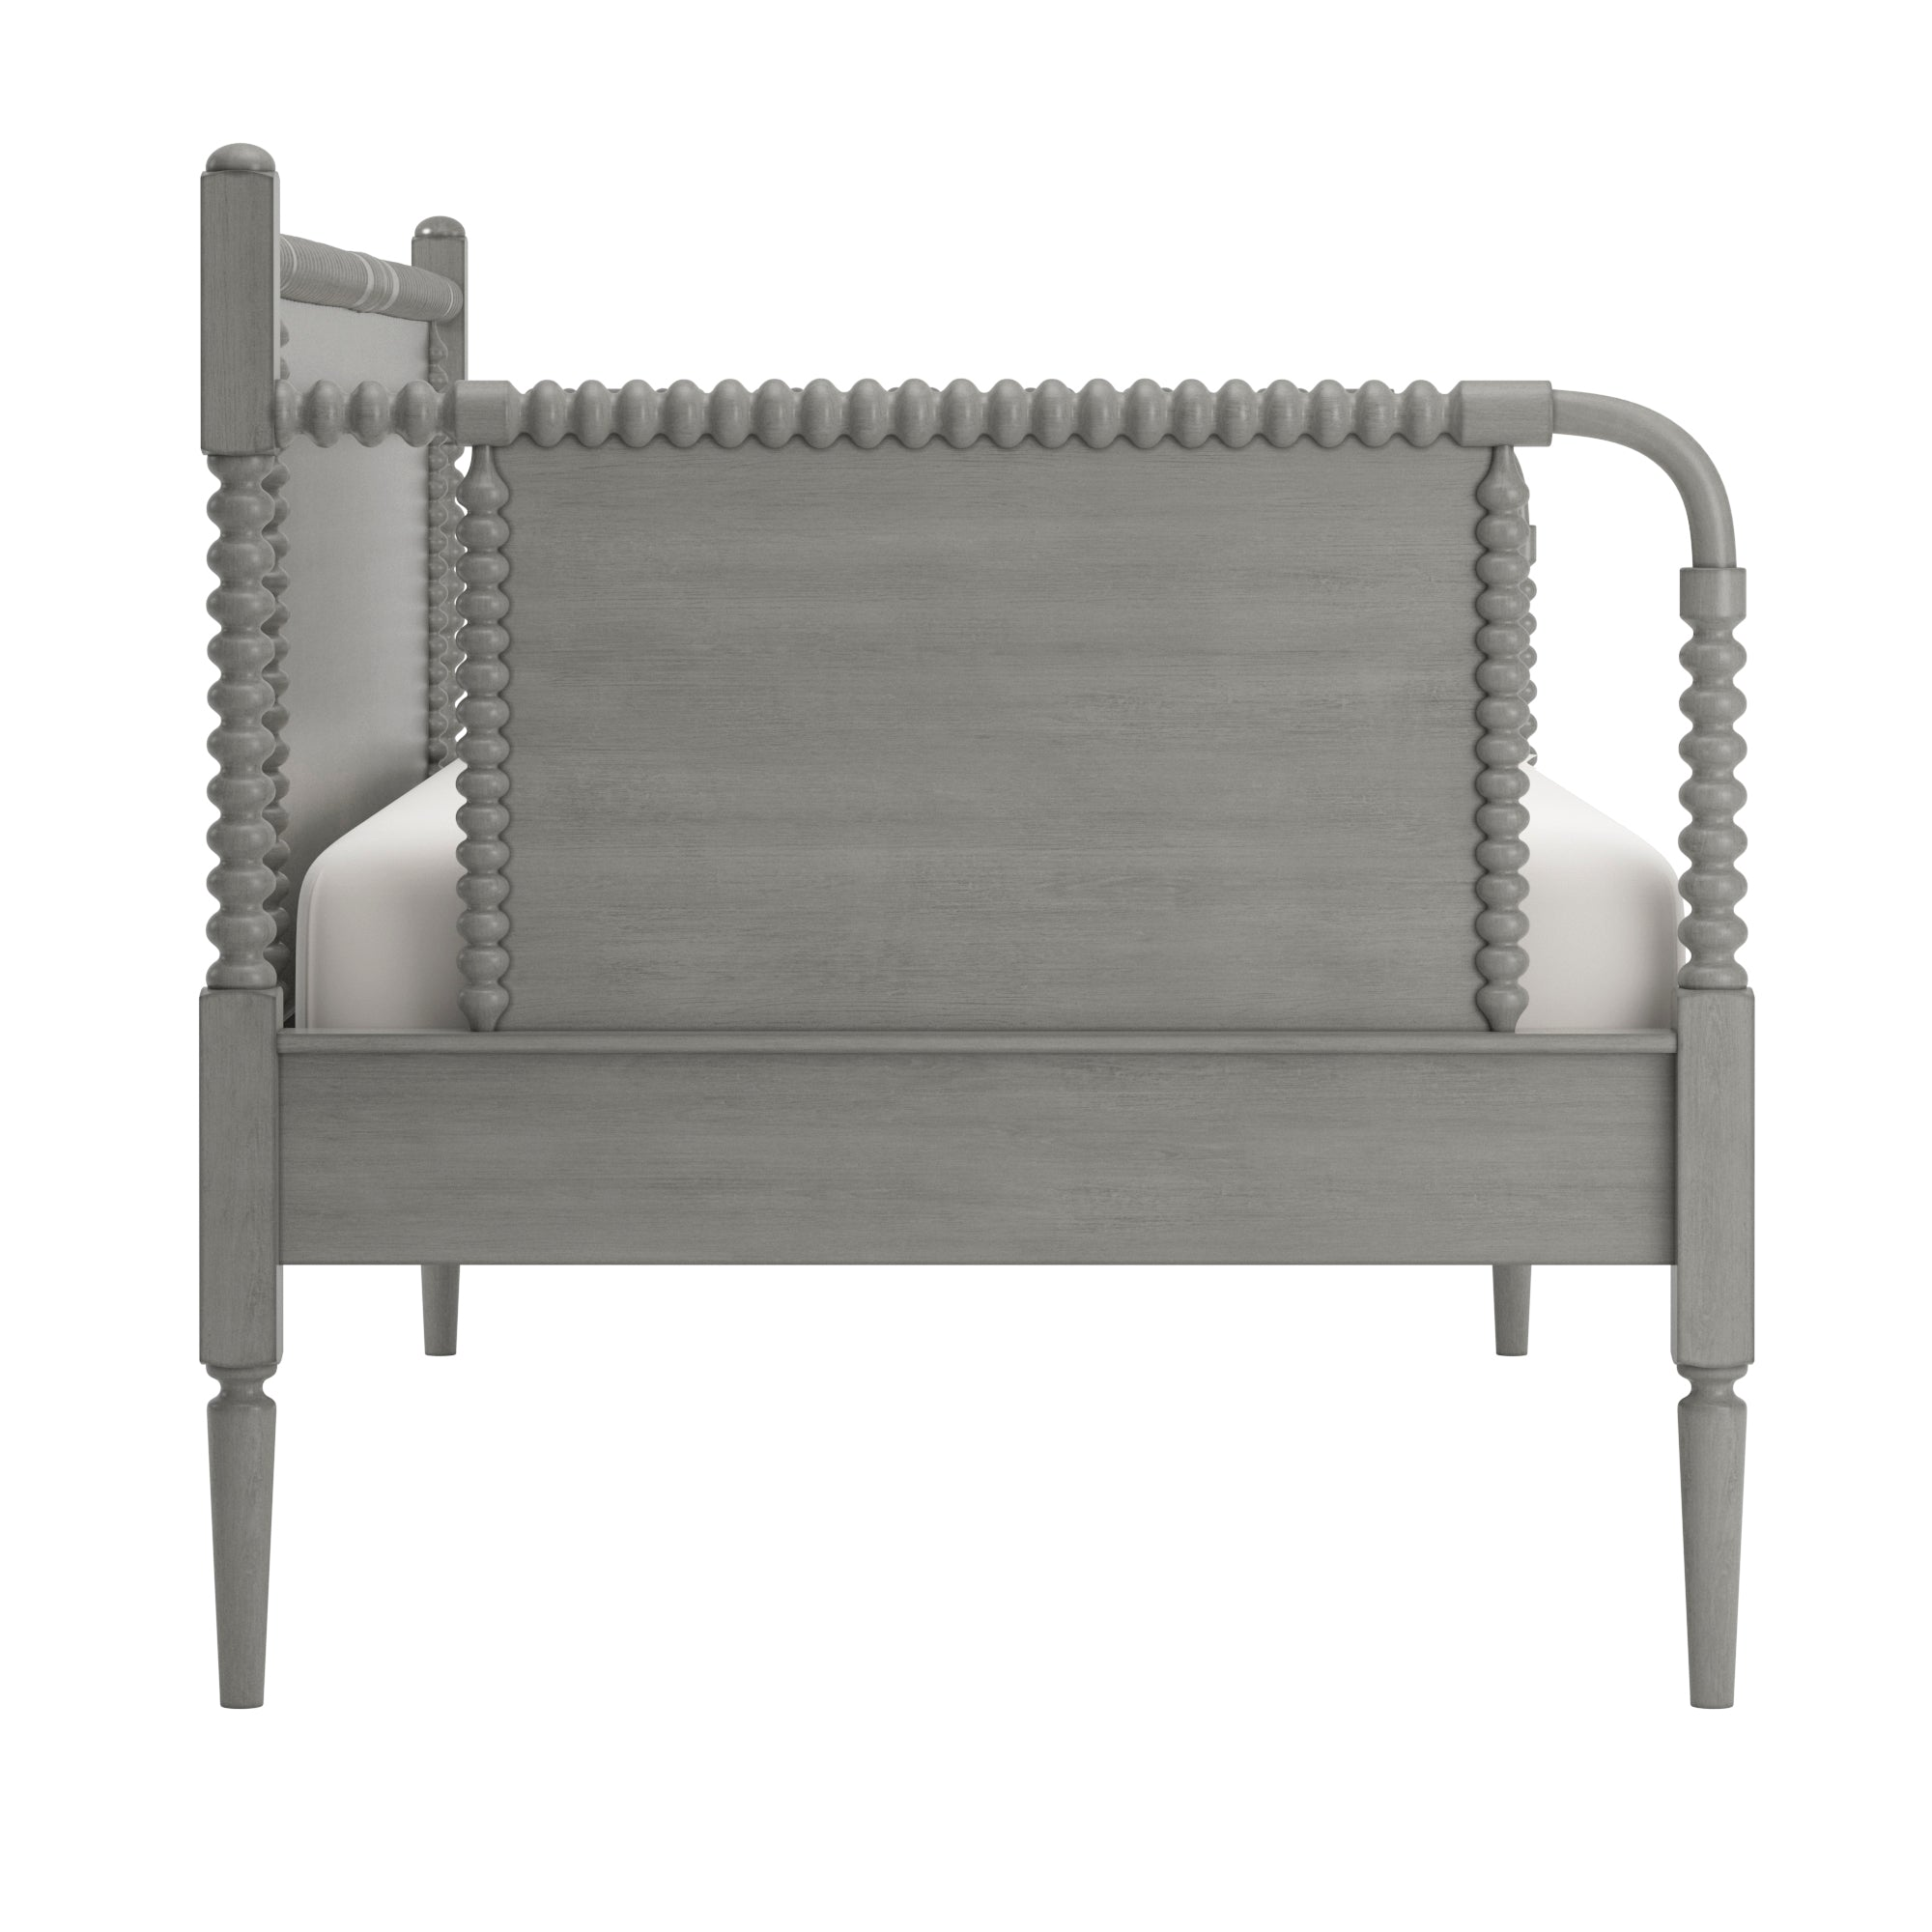 Traditional Beaded Wood Daybed - Antique Grey, No Trundle